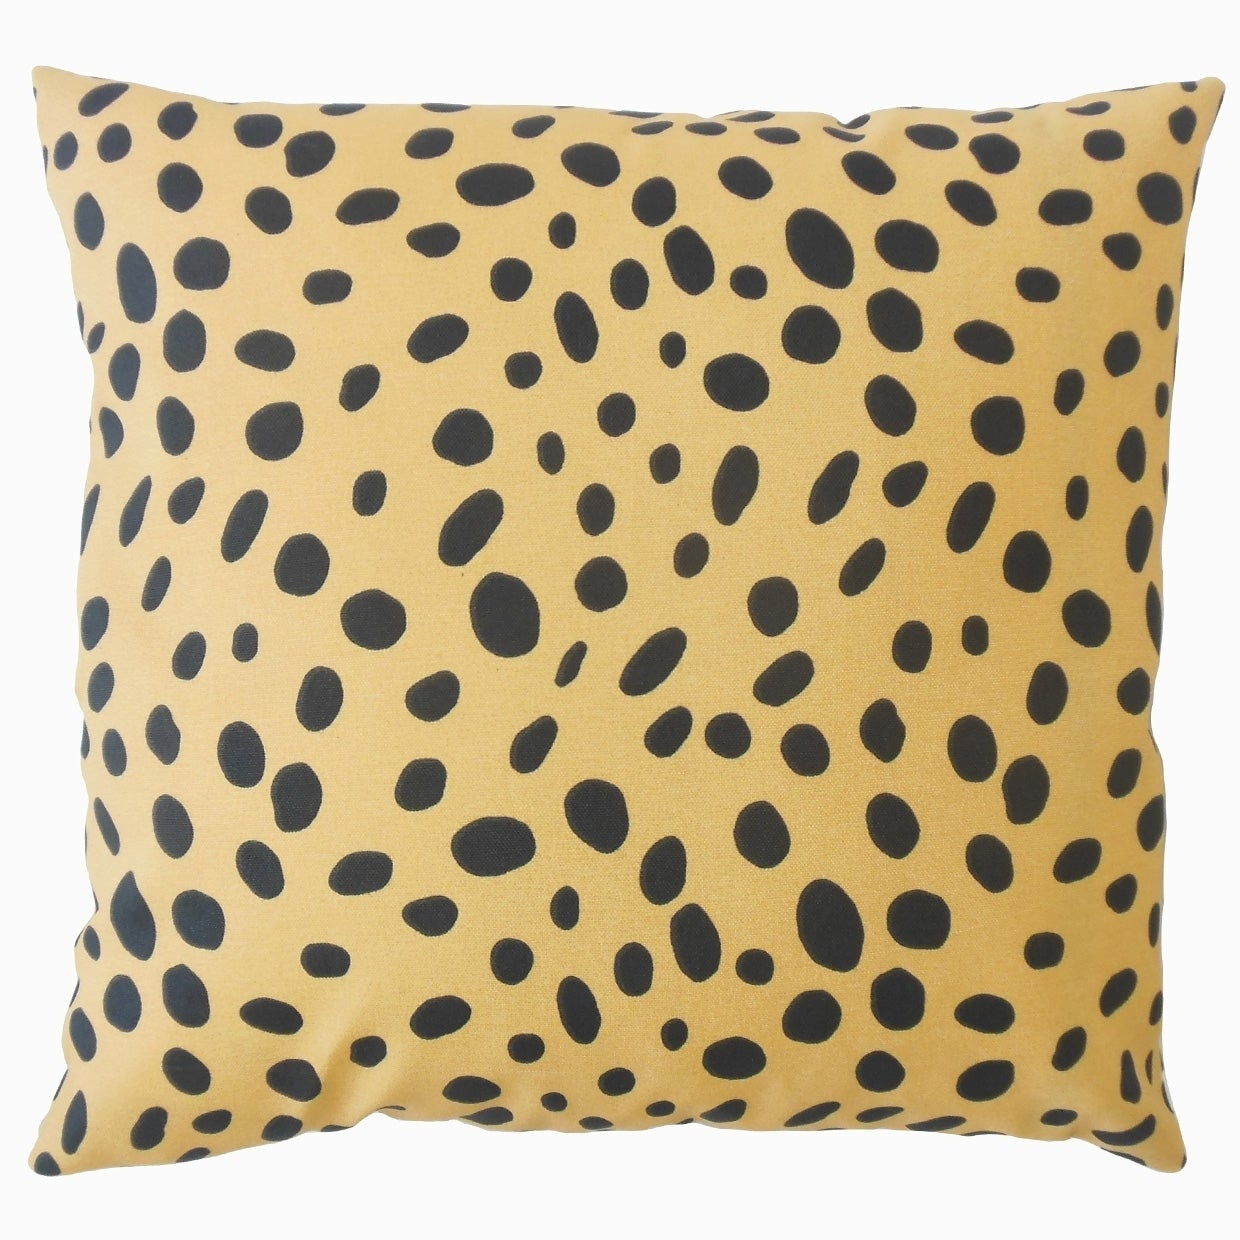 Ibson Polka Dot Down Filled Throw Pillow in Tan (Square - 18 x 18)